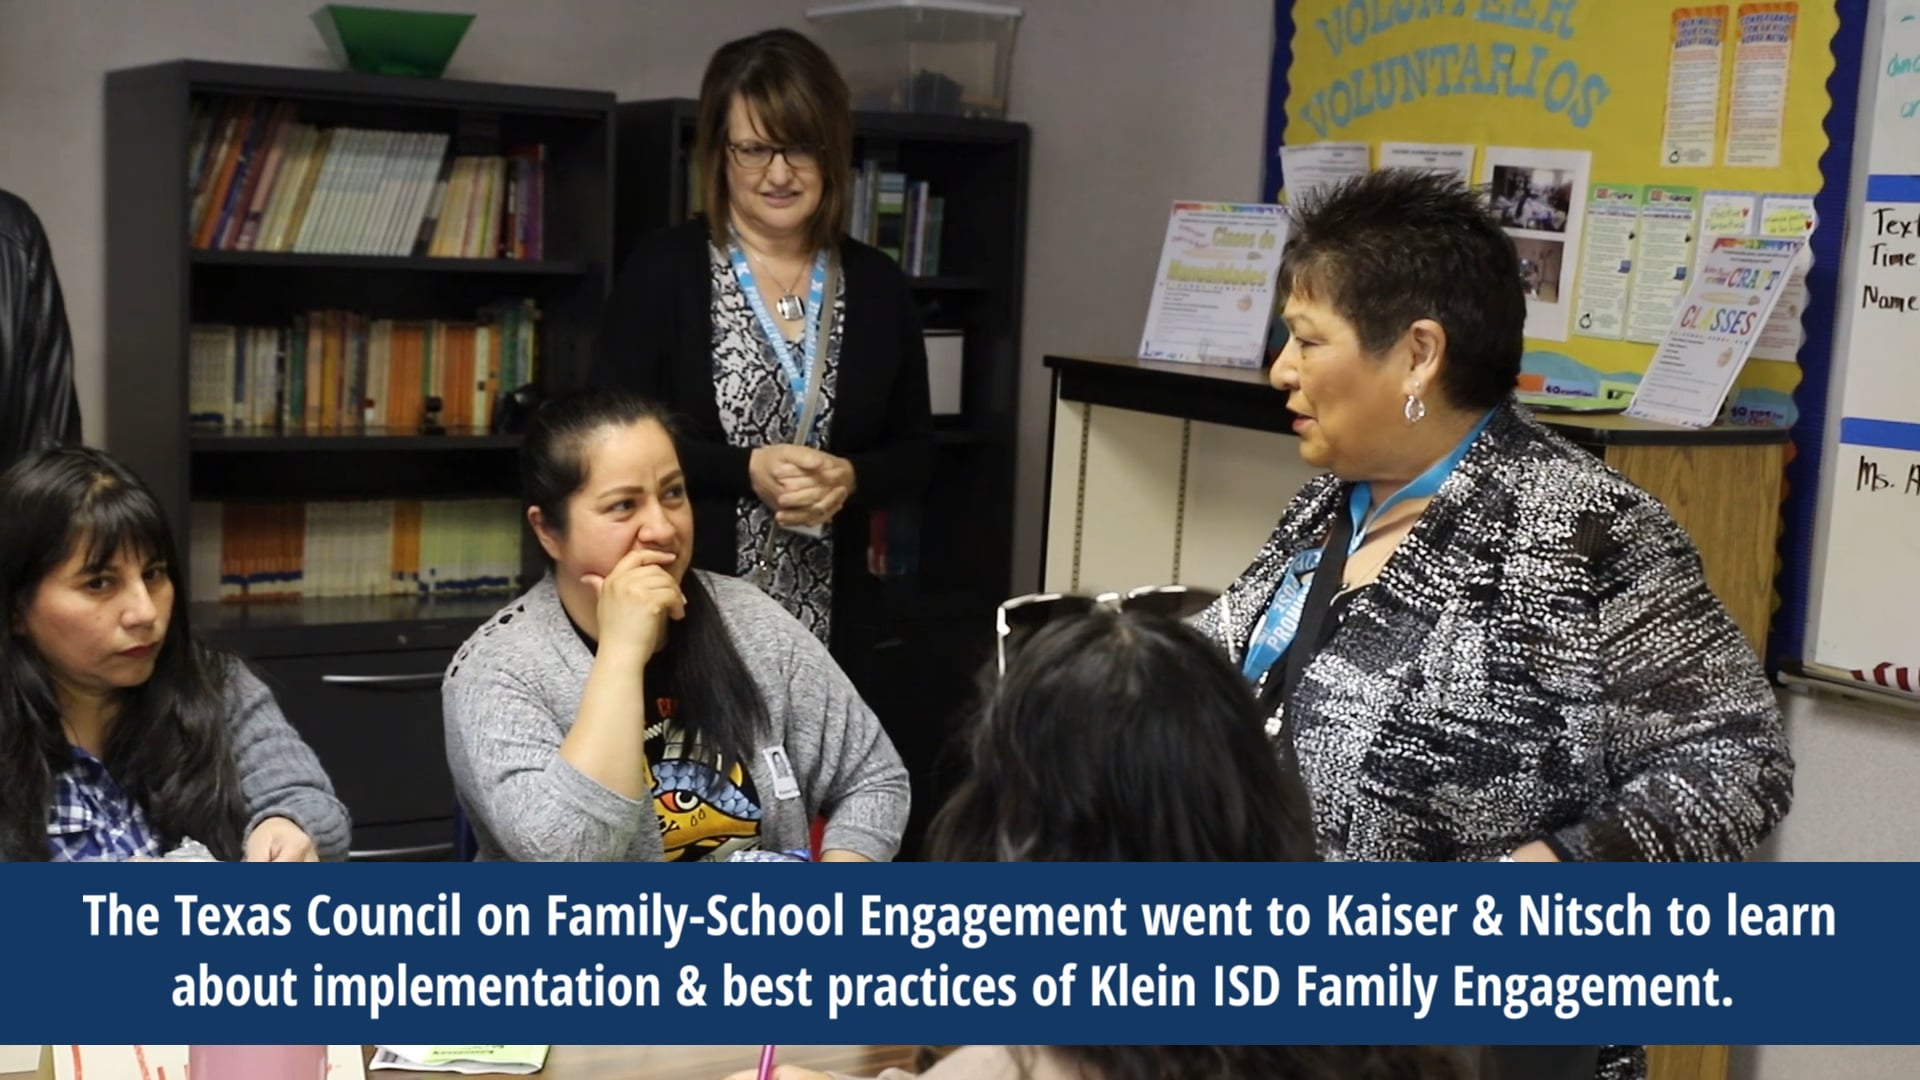 Texas Council on Family-School Engagement Visits Klein ISD